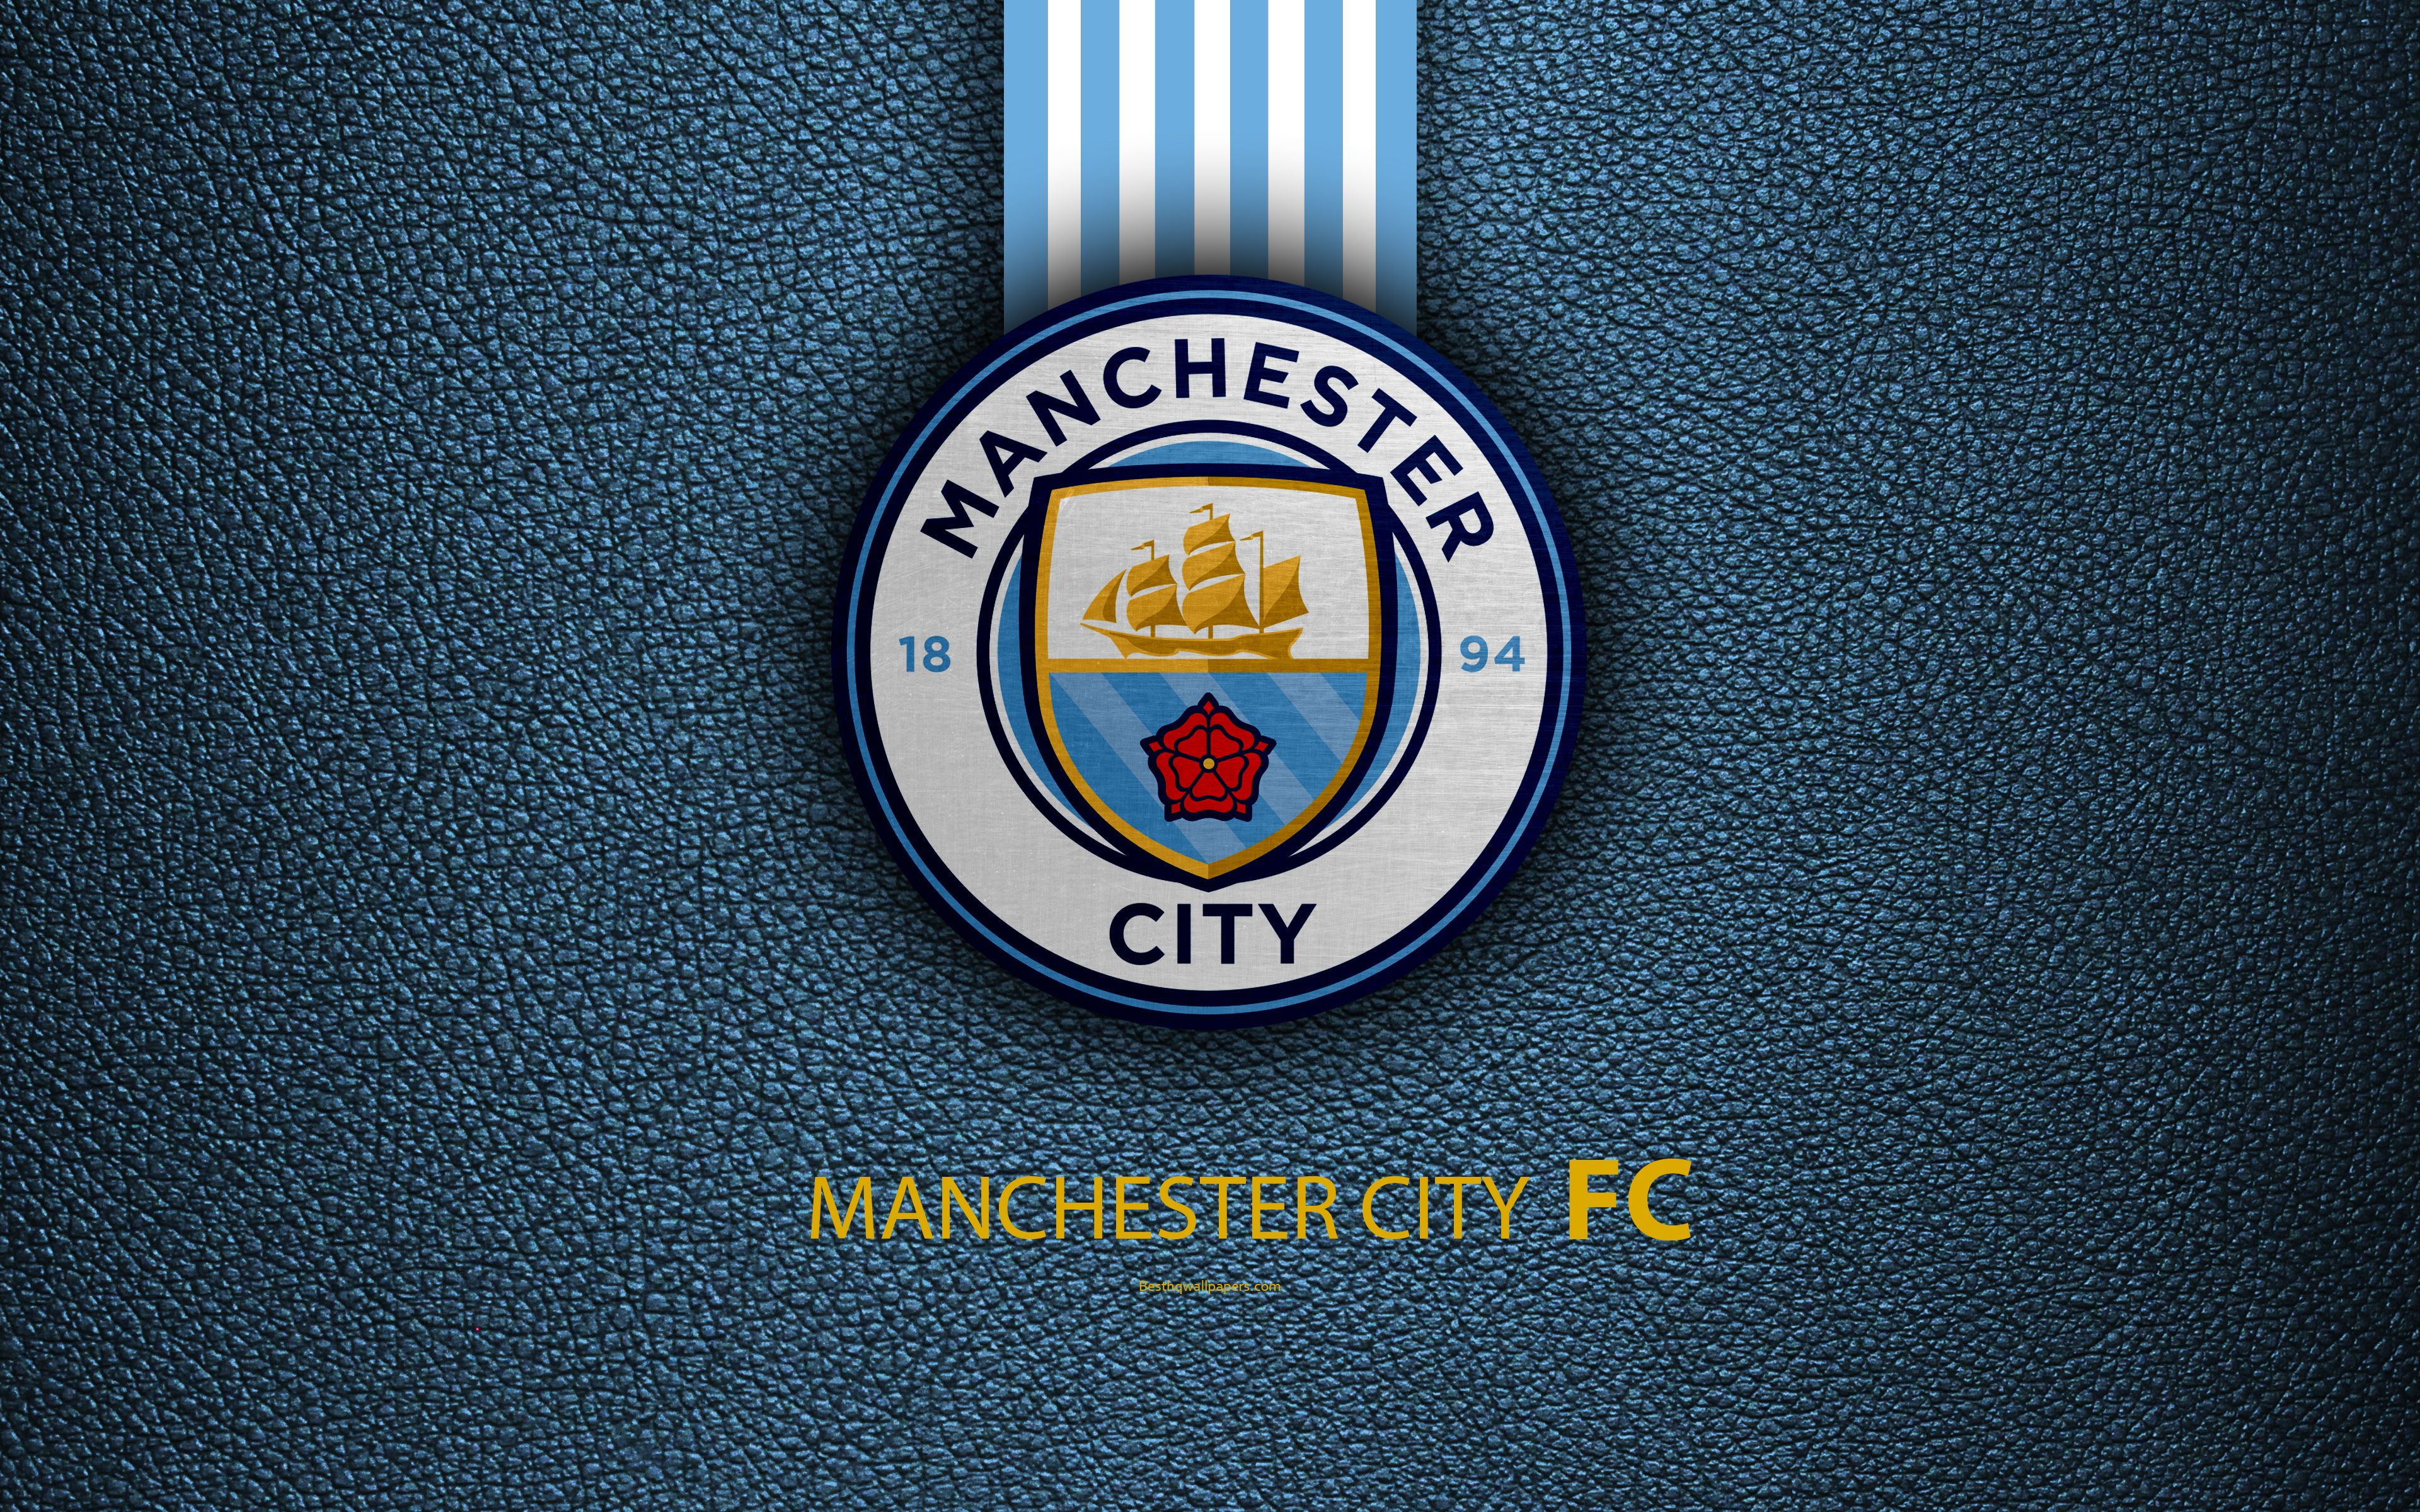 Manchester City FC, FC, 4K, English Football Club, Leather